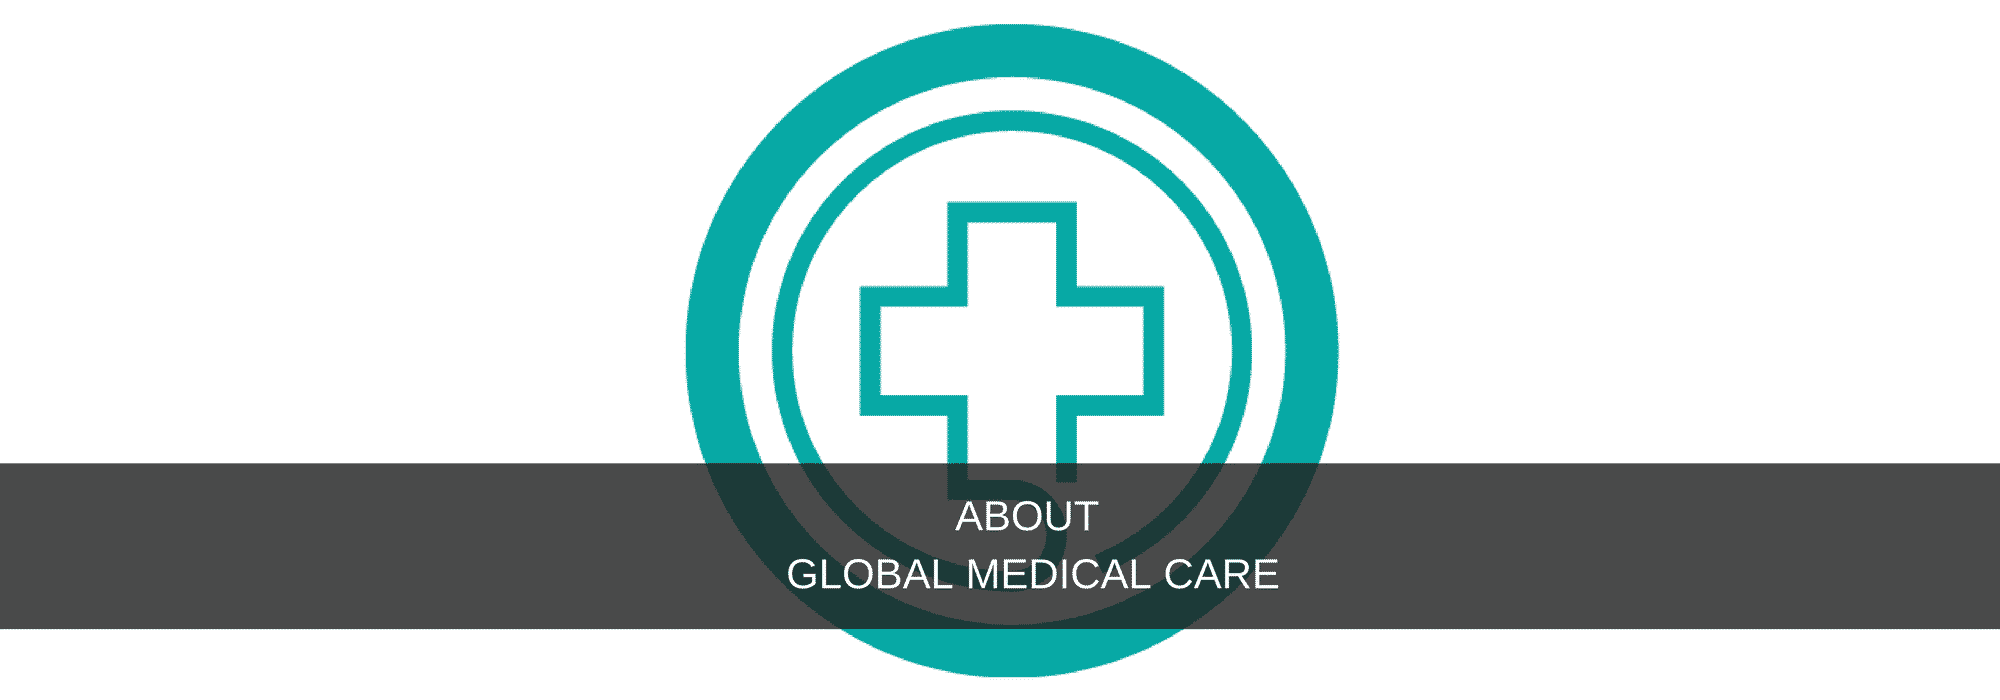 Global Medical Care FAQ - Global Medical Care